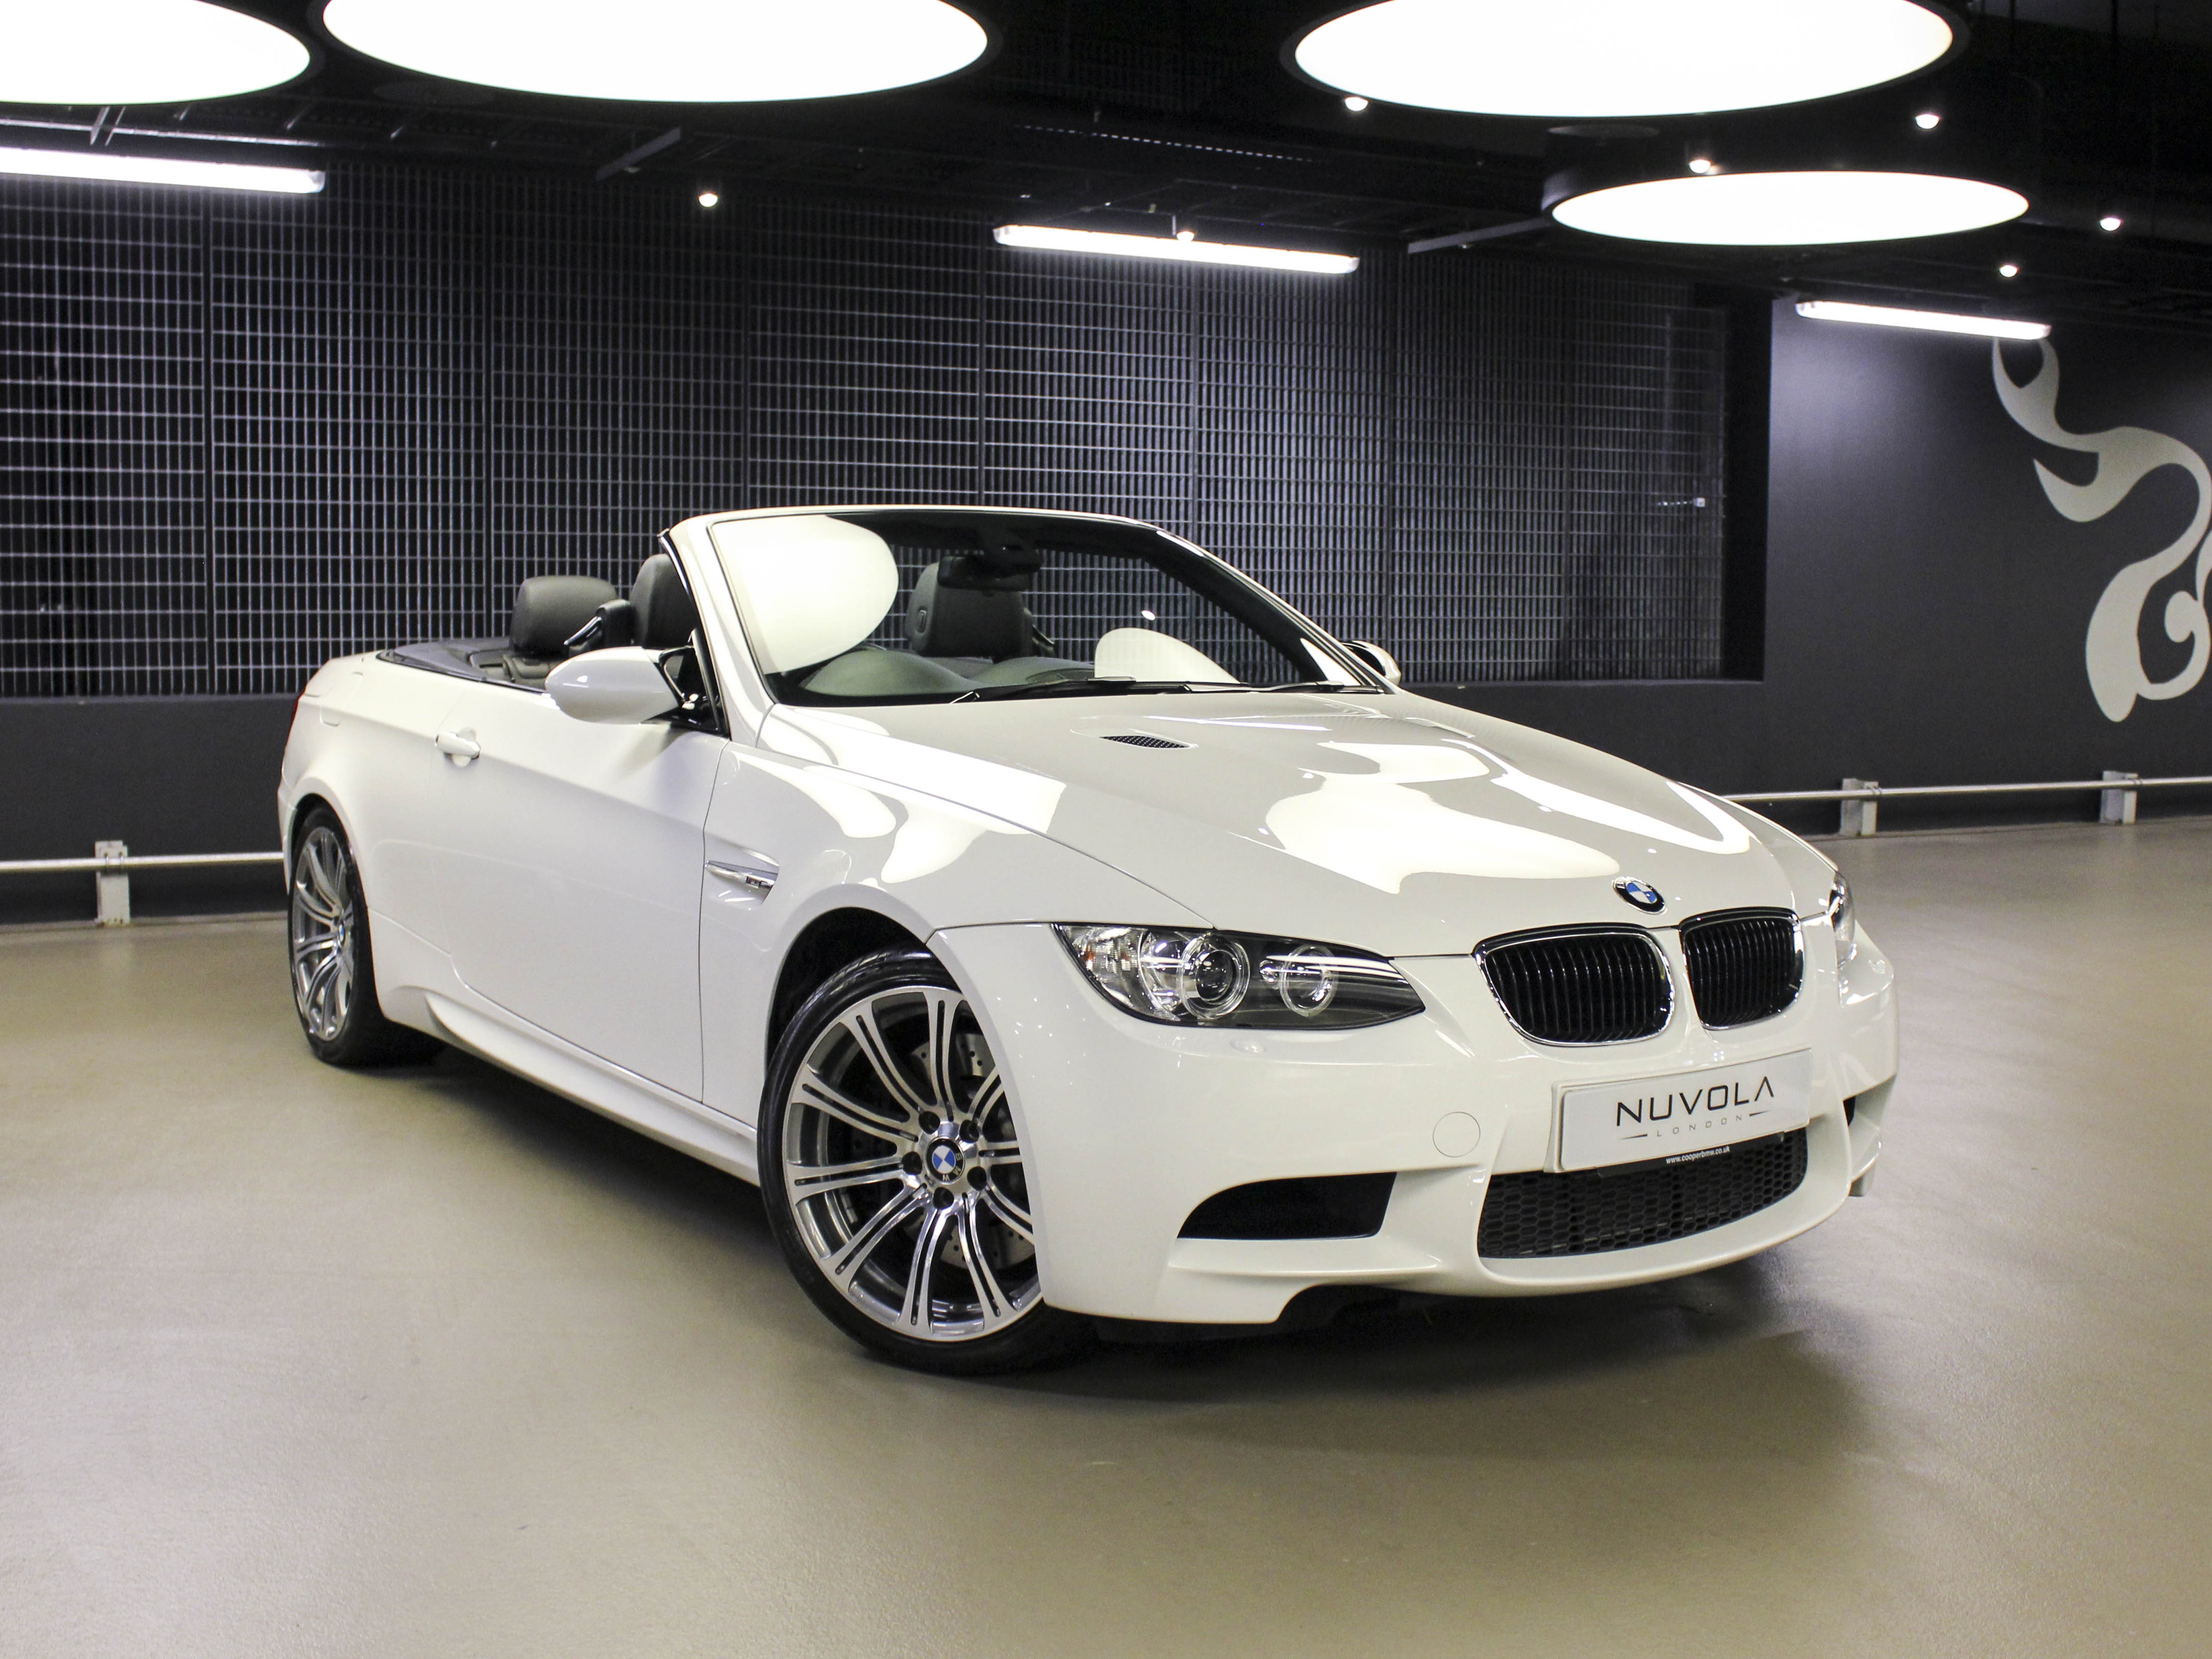 bmw m3 convertible 4 0 v8 dct 2dr convertible nuvola london. Black Bedroom Furniture Sets. Home Design Ideas